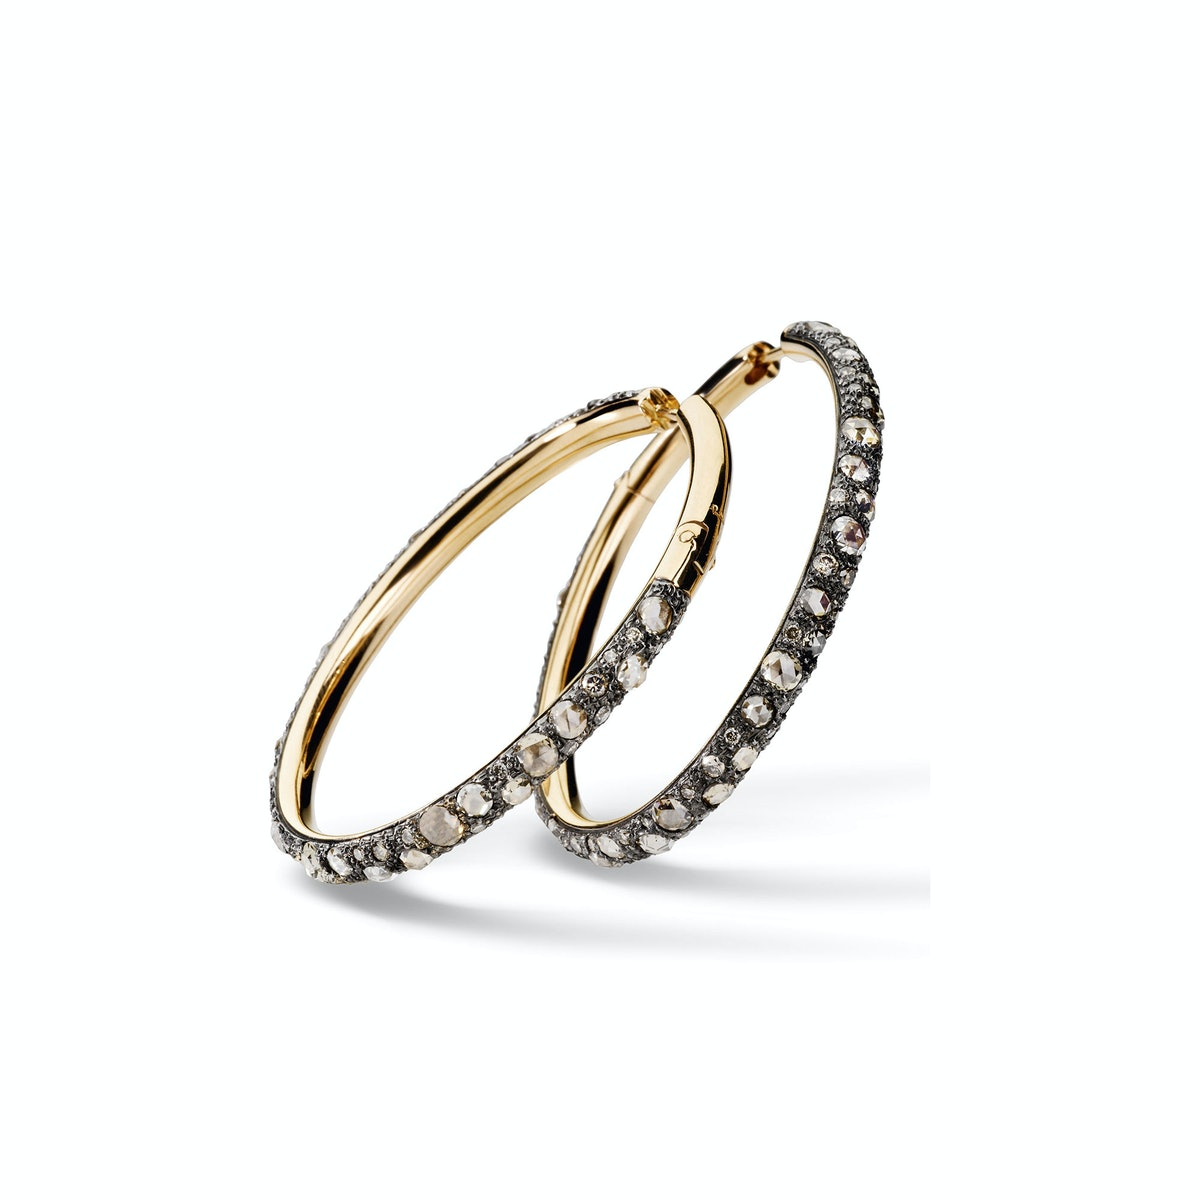 Pomellato Tango earrings in 18kt rose gold and brown diamonds